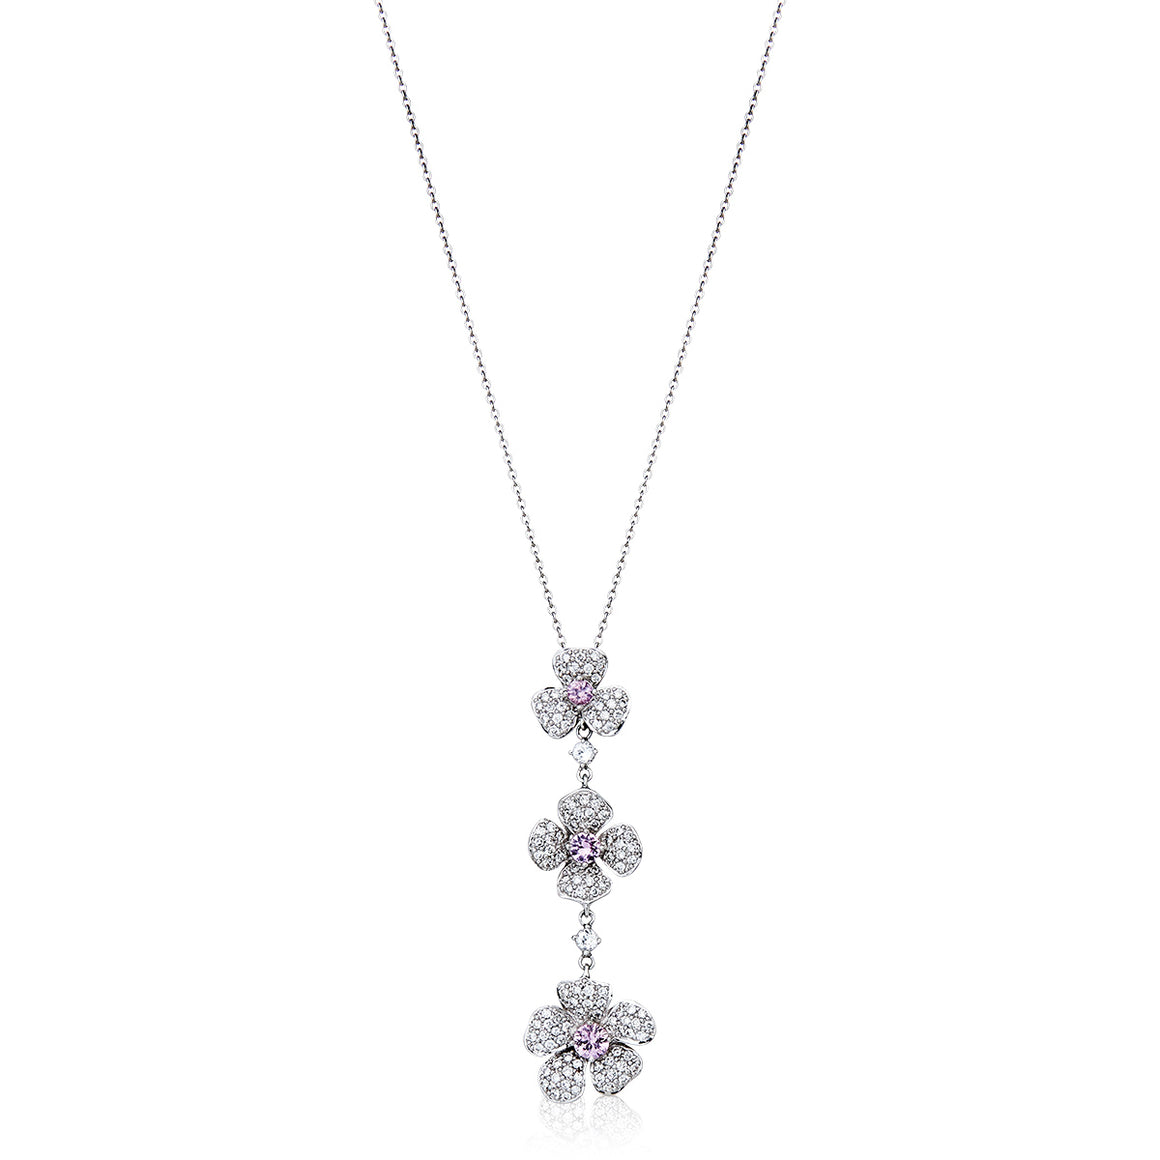 Spring Flower Sapphire and Diamond Necklace